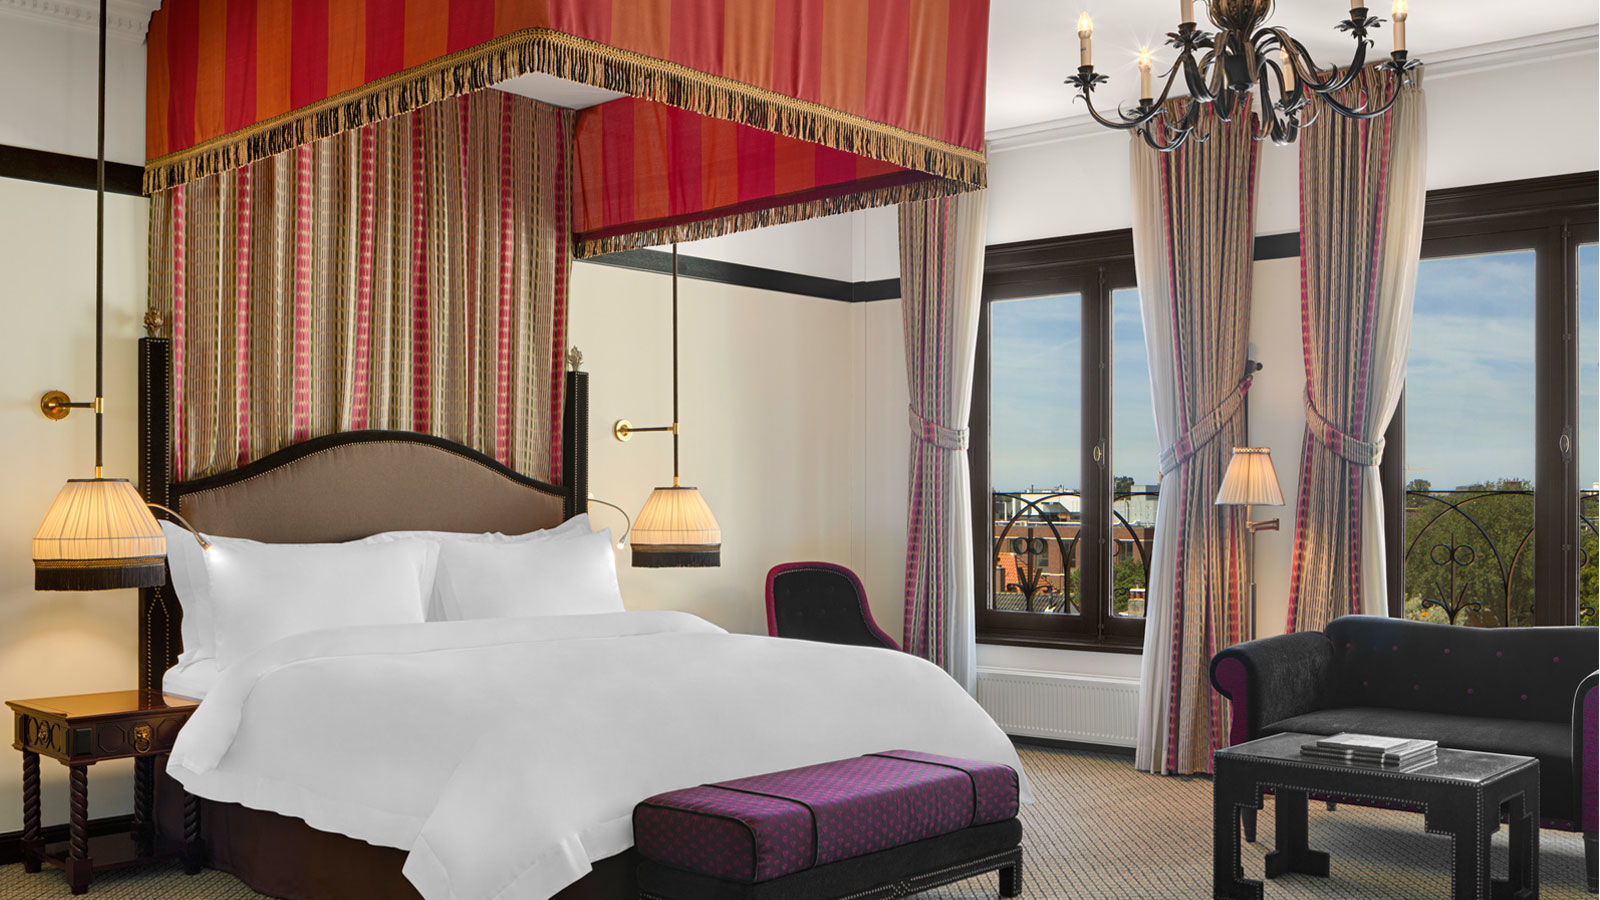 Hotel Des Indes, The Hague | Junior Suite